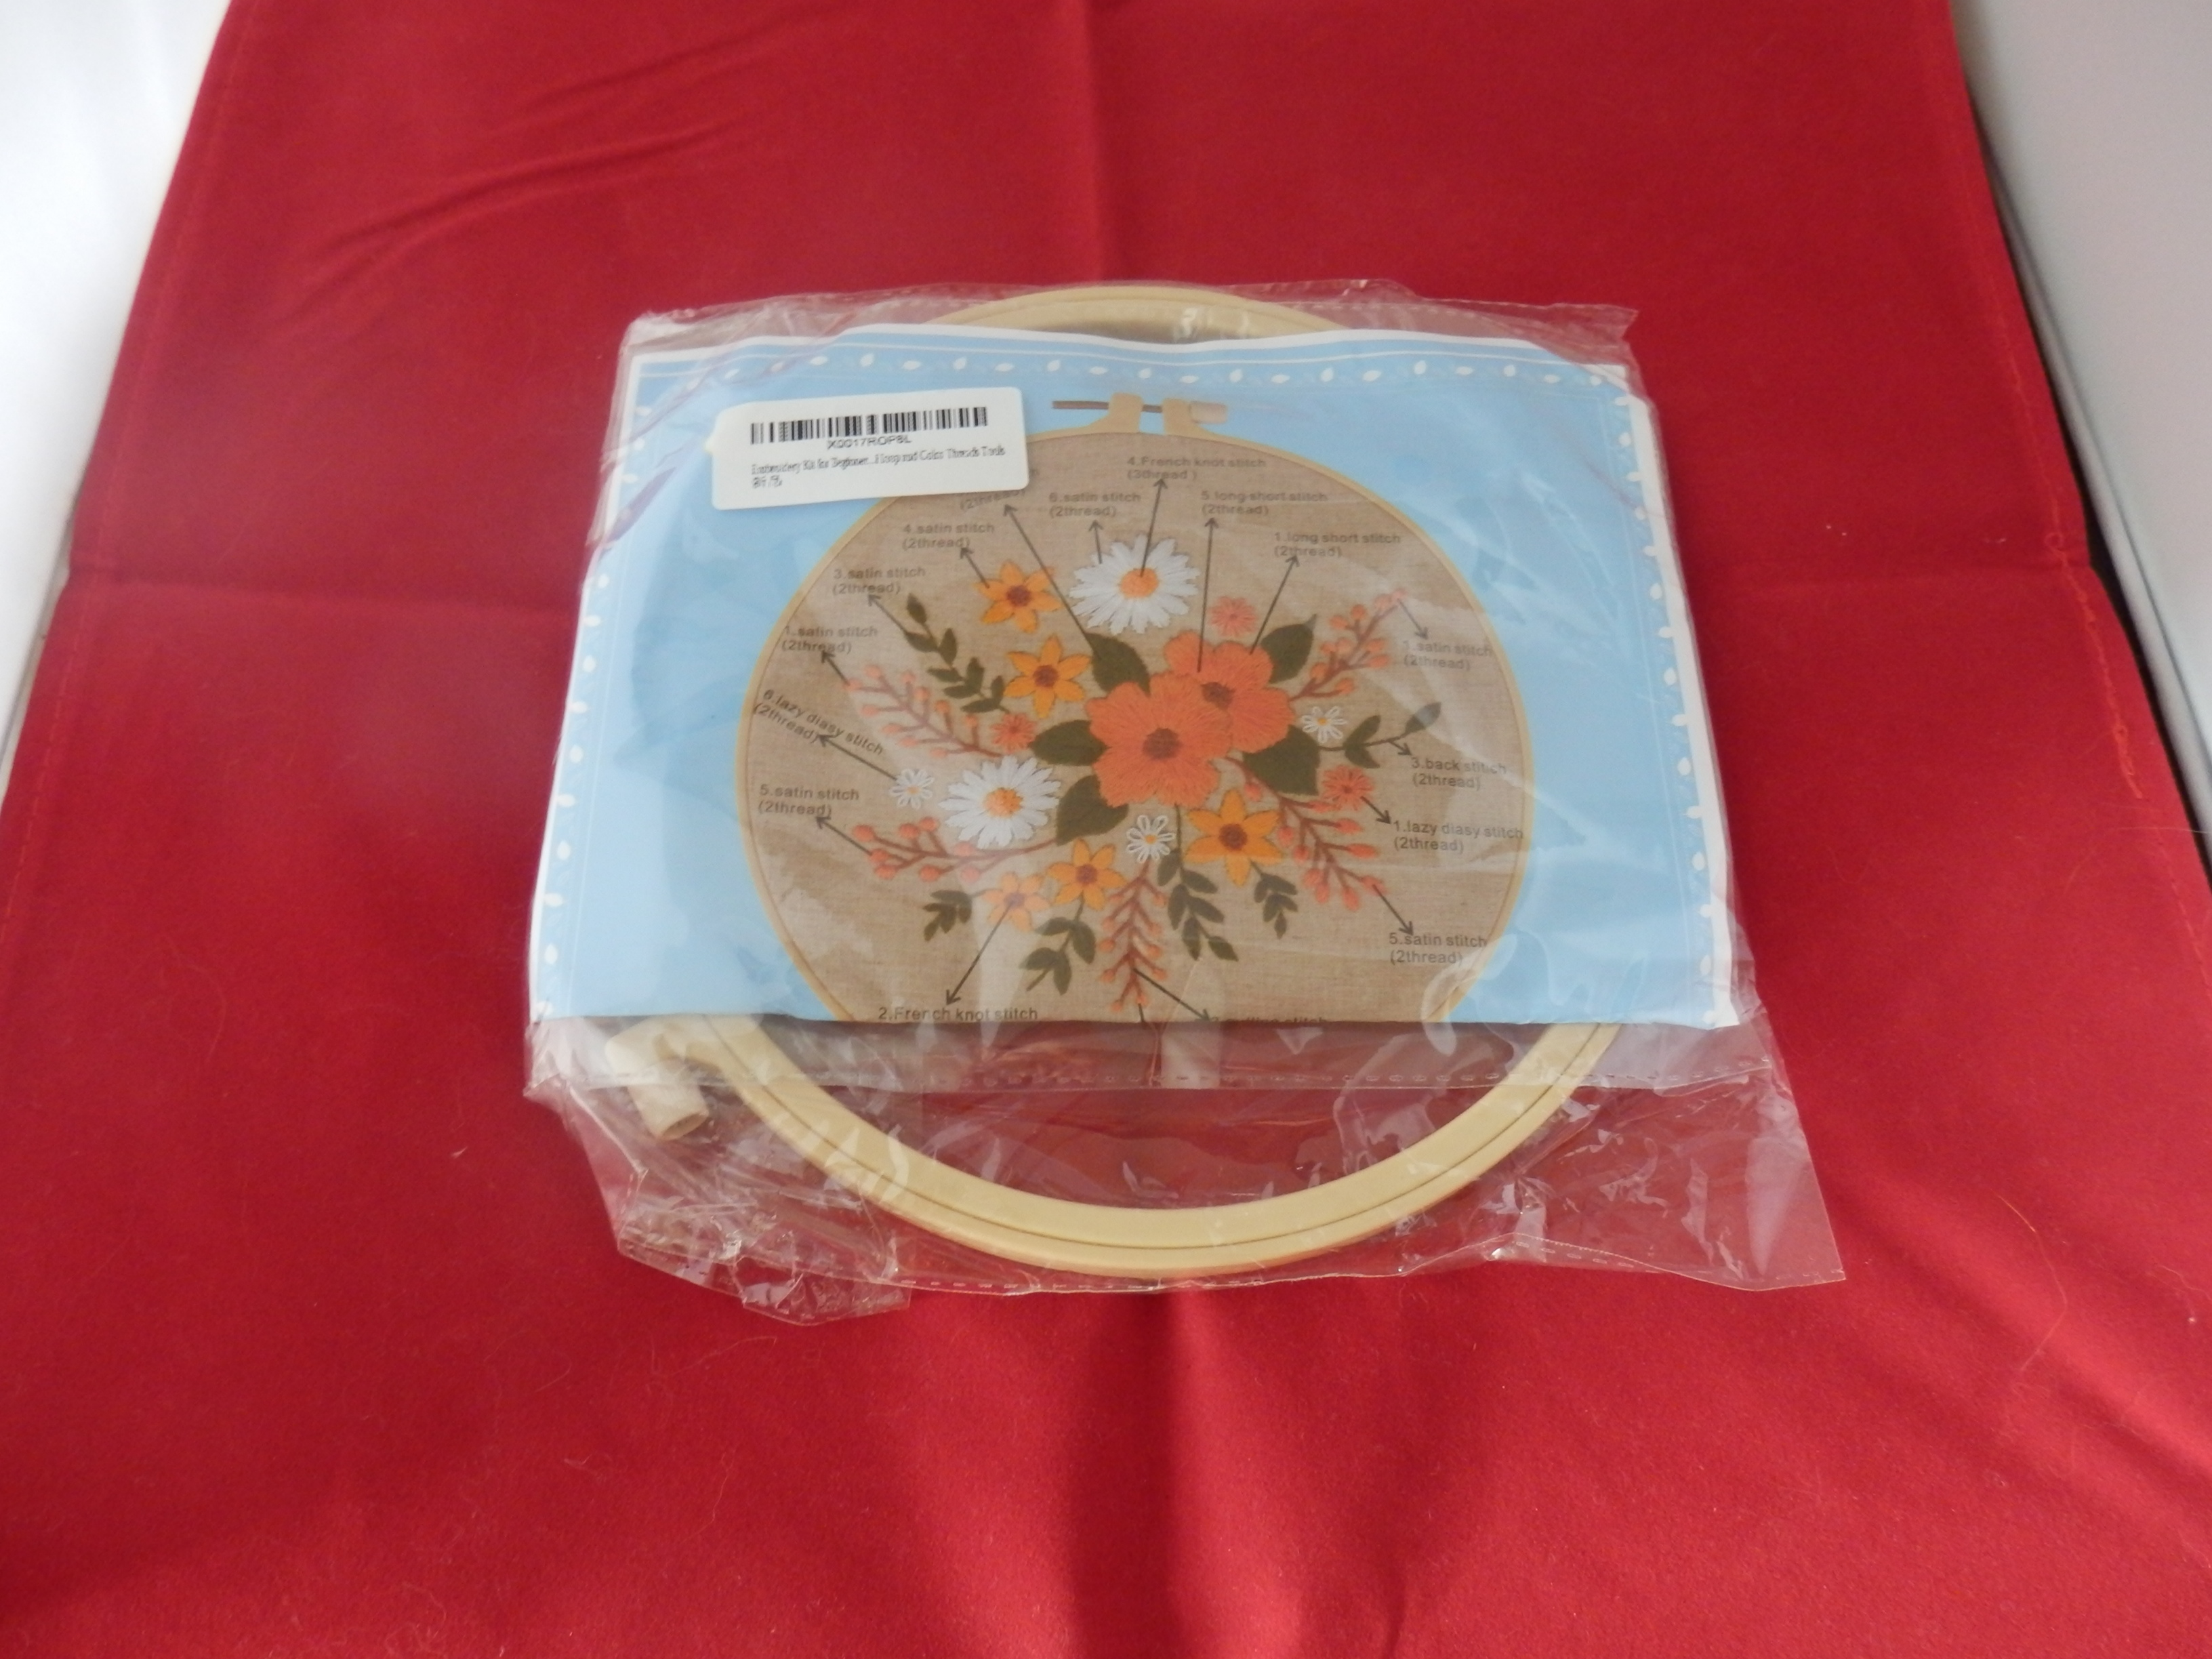 Embroidery Kit for Beginners with Printed Pattern, Embroidery Hoop and Coloured Threads by FoolsAlibai